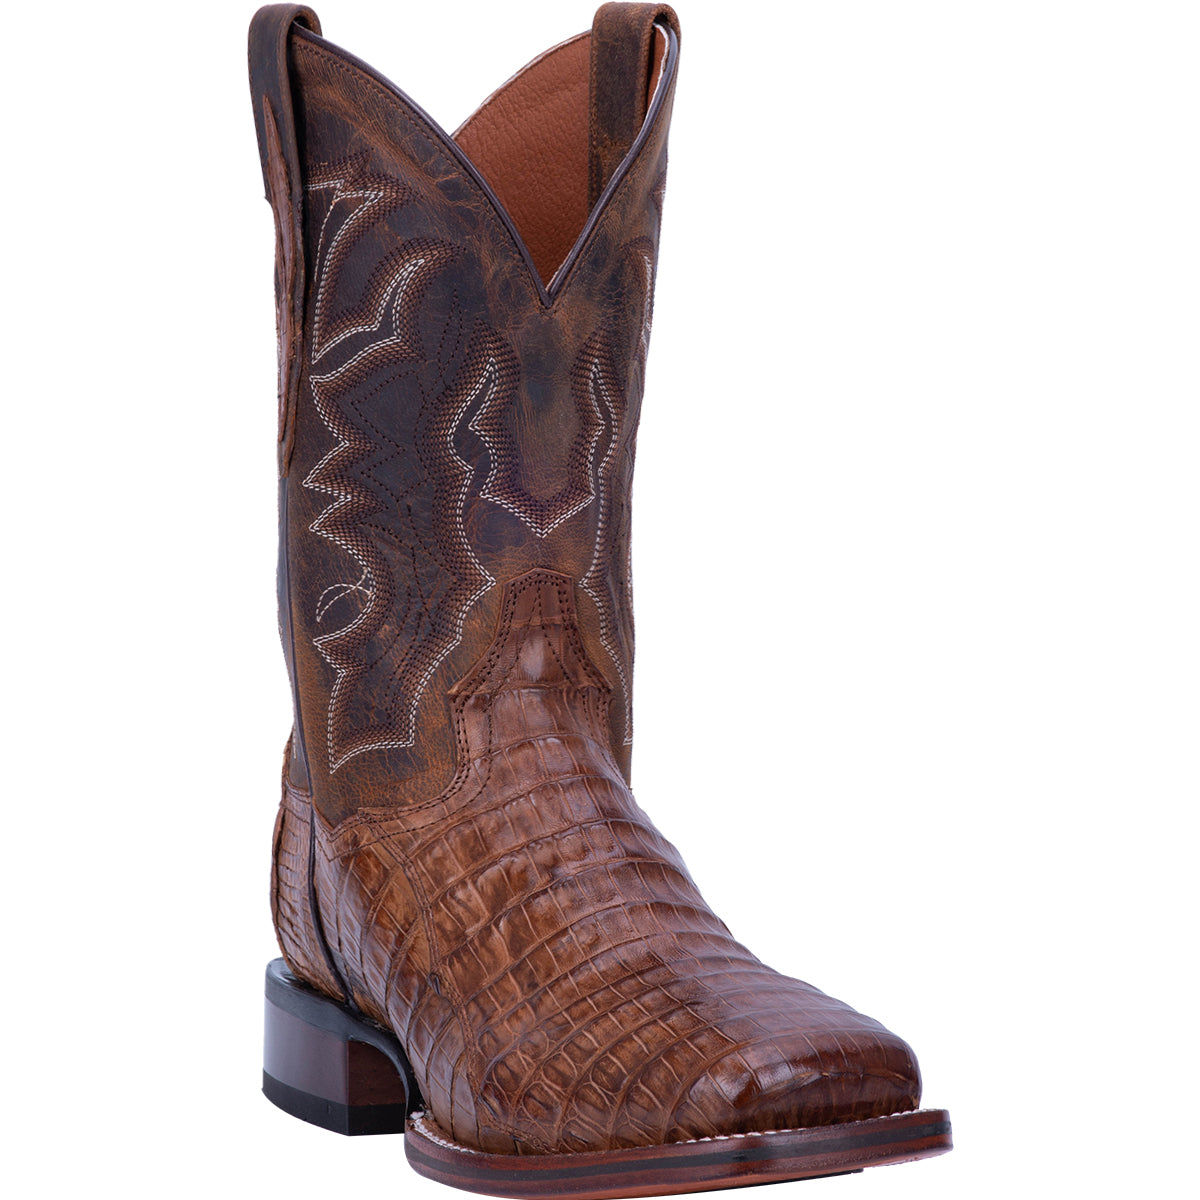 KINGSLY CAIMAN BOOT 5547776606250